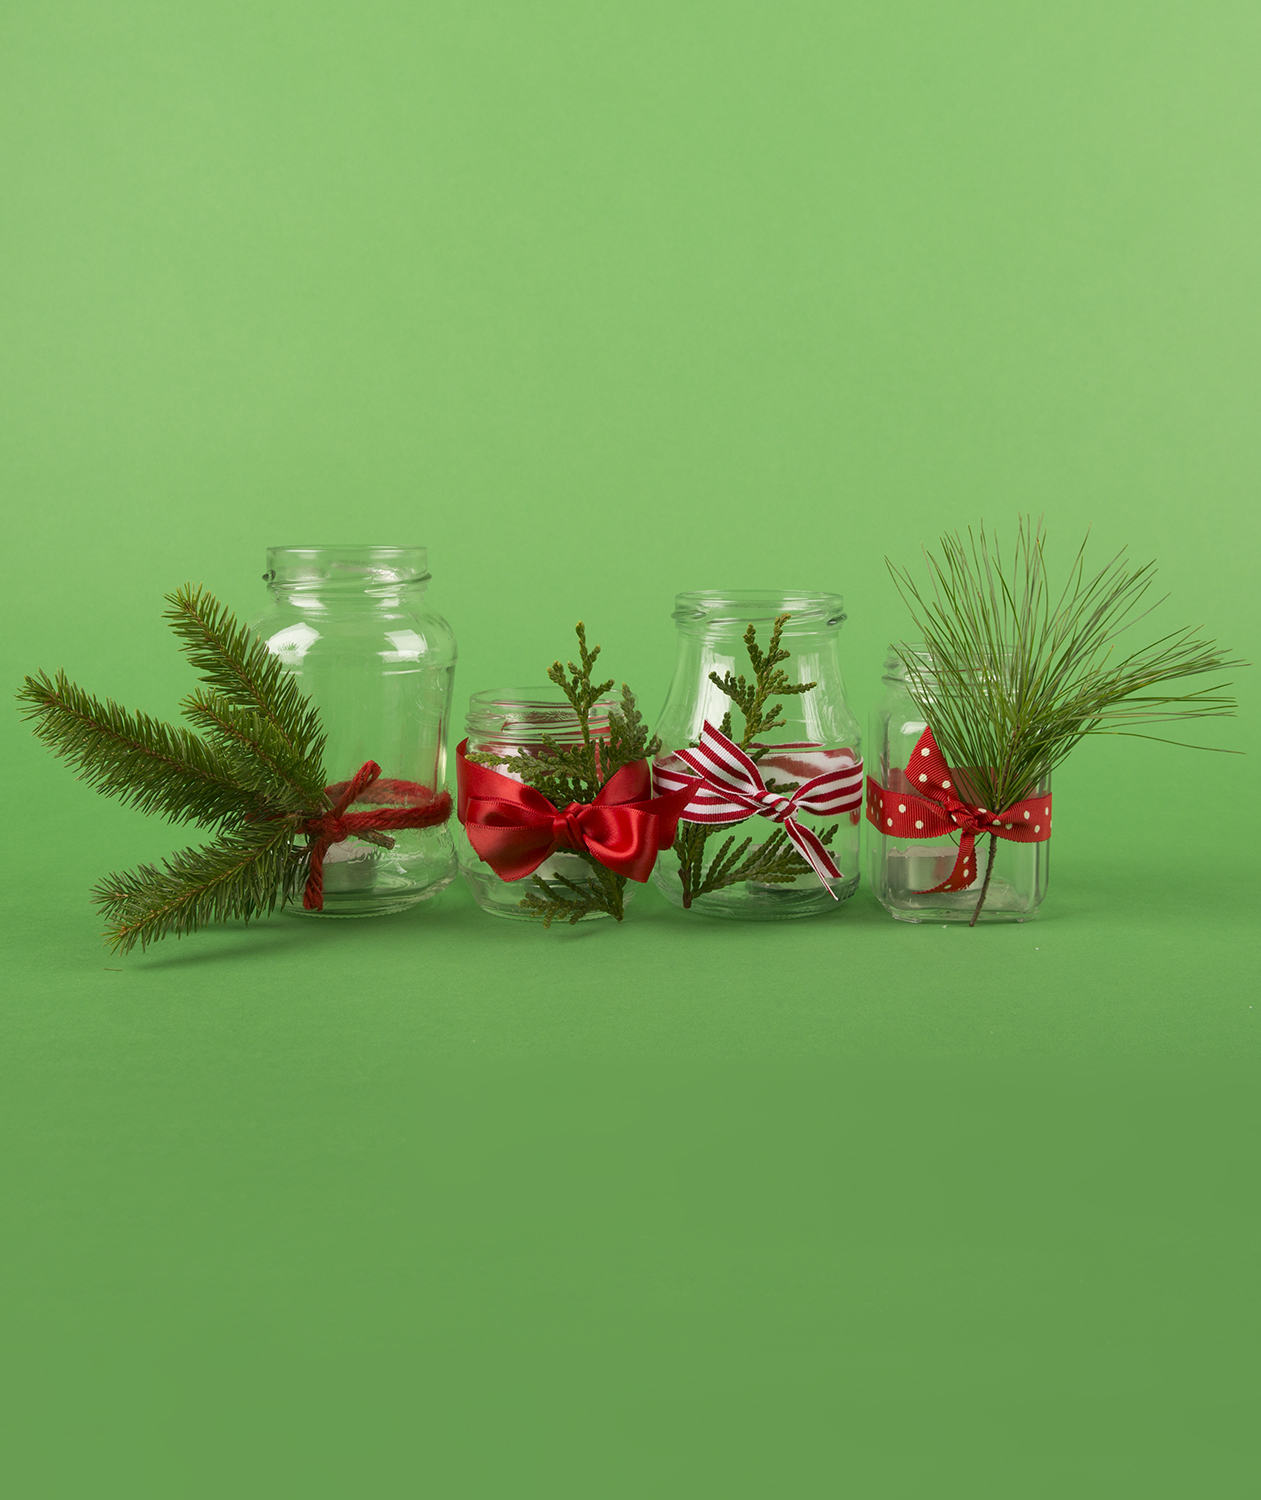 Christmas crafts ideas - Candleholders